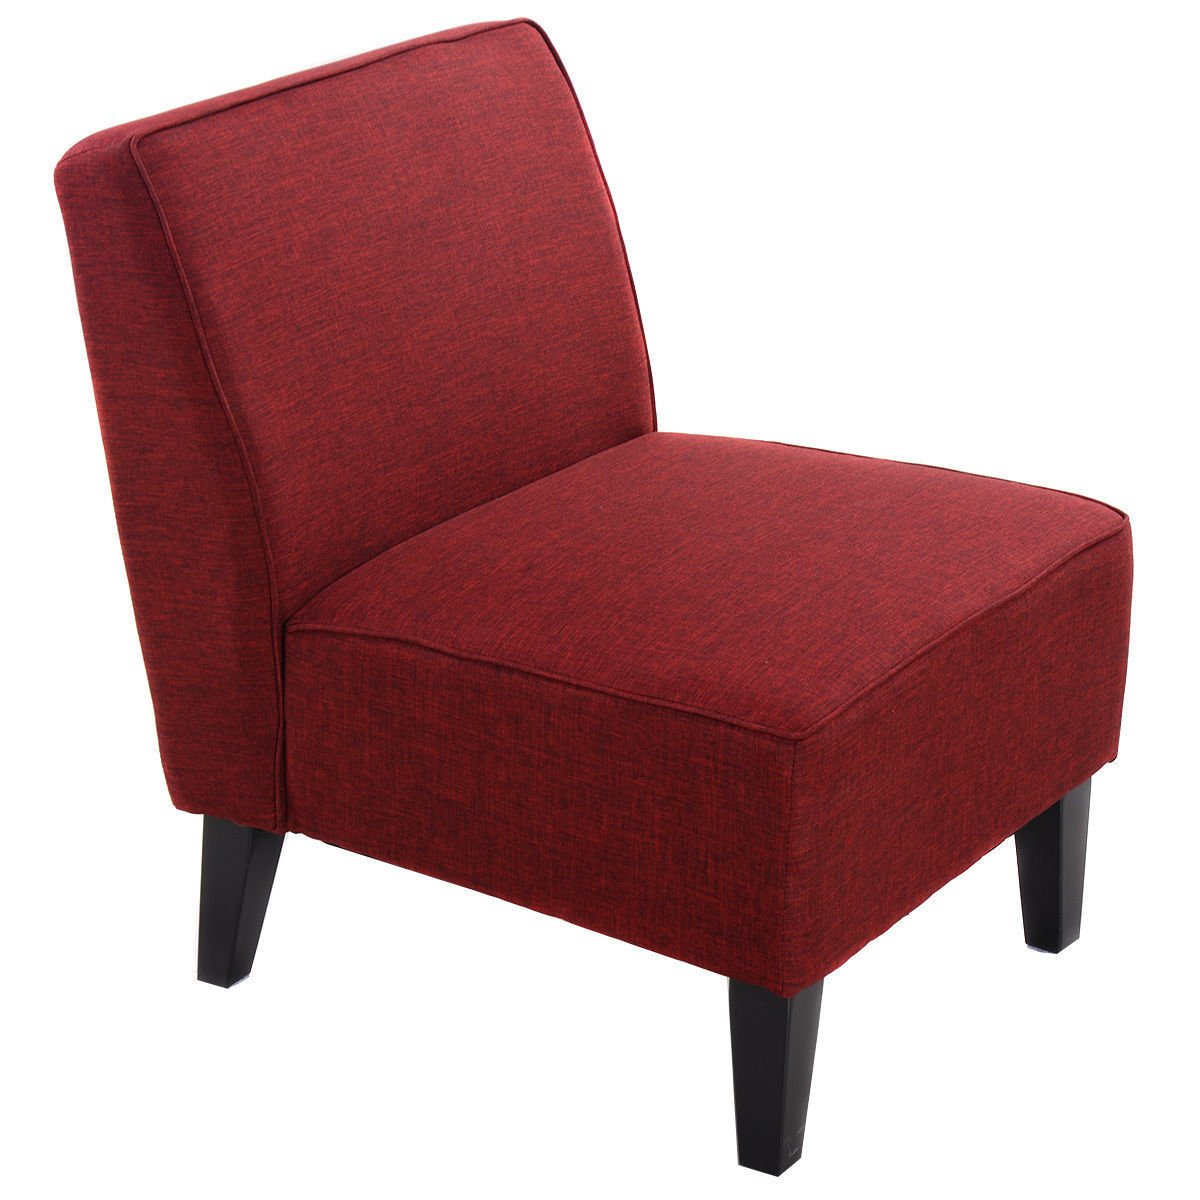 New Red Accent Chair Armless Contemporary Dining Chair Living Room Furniture